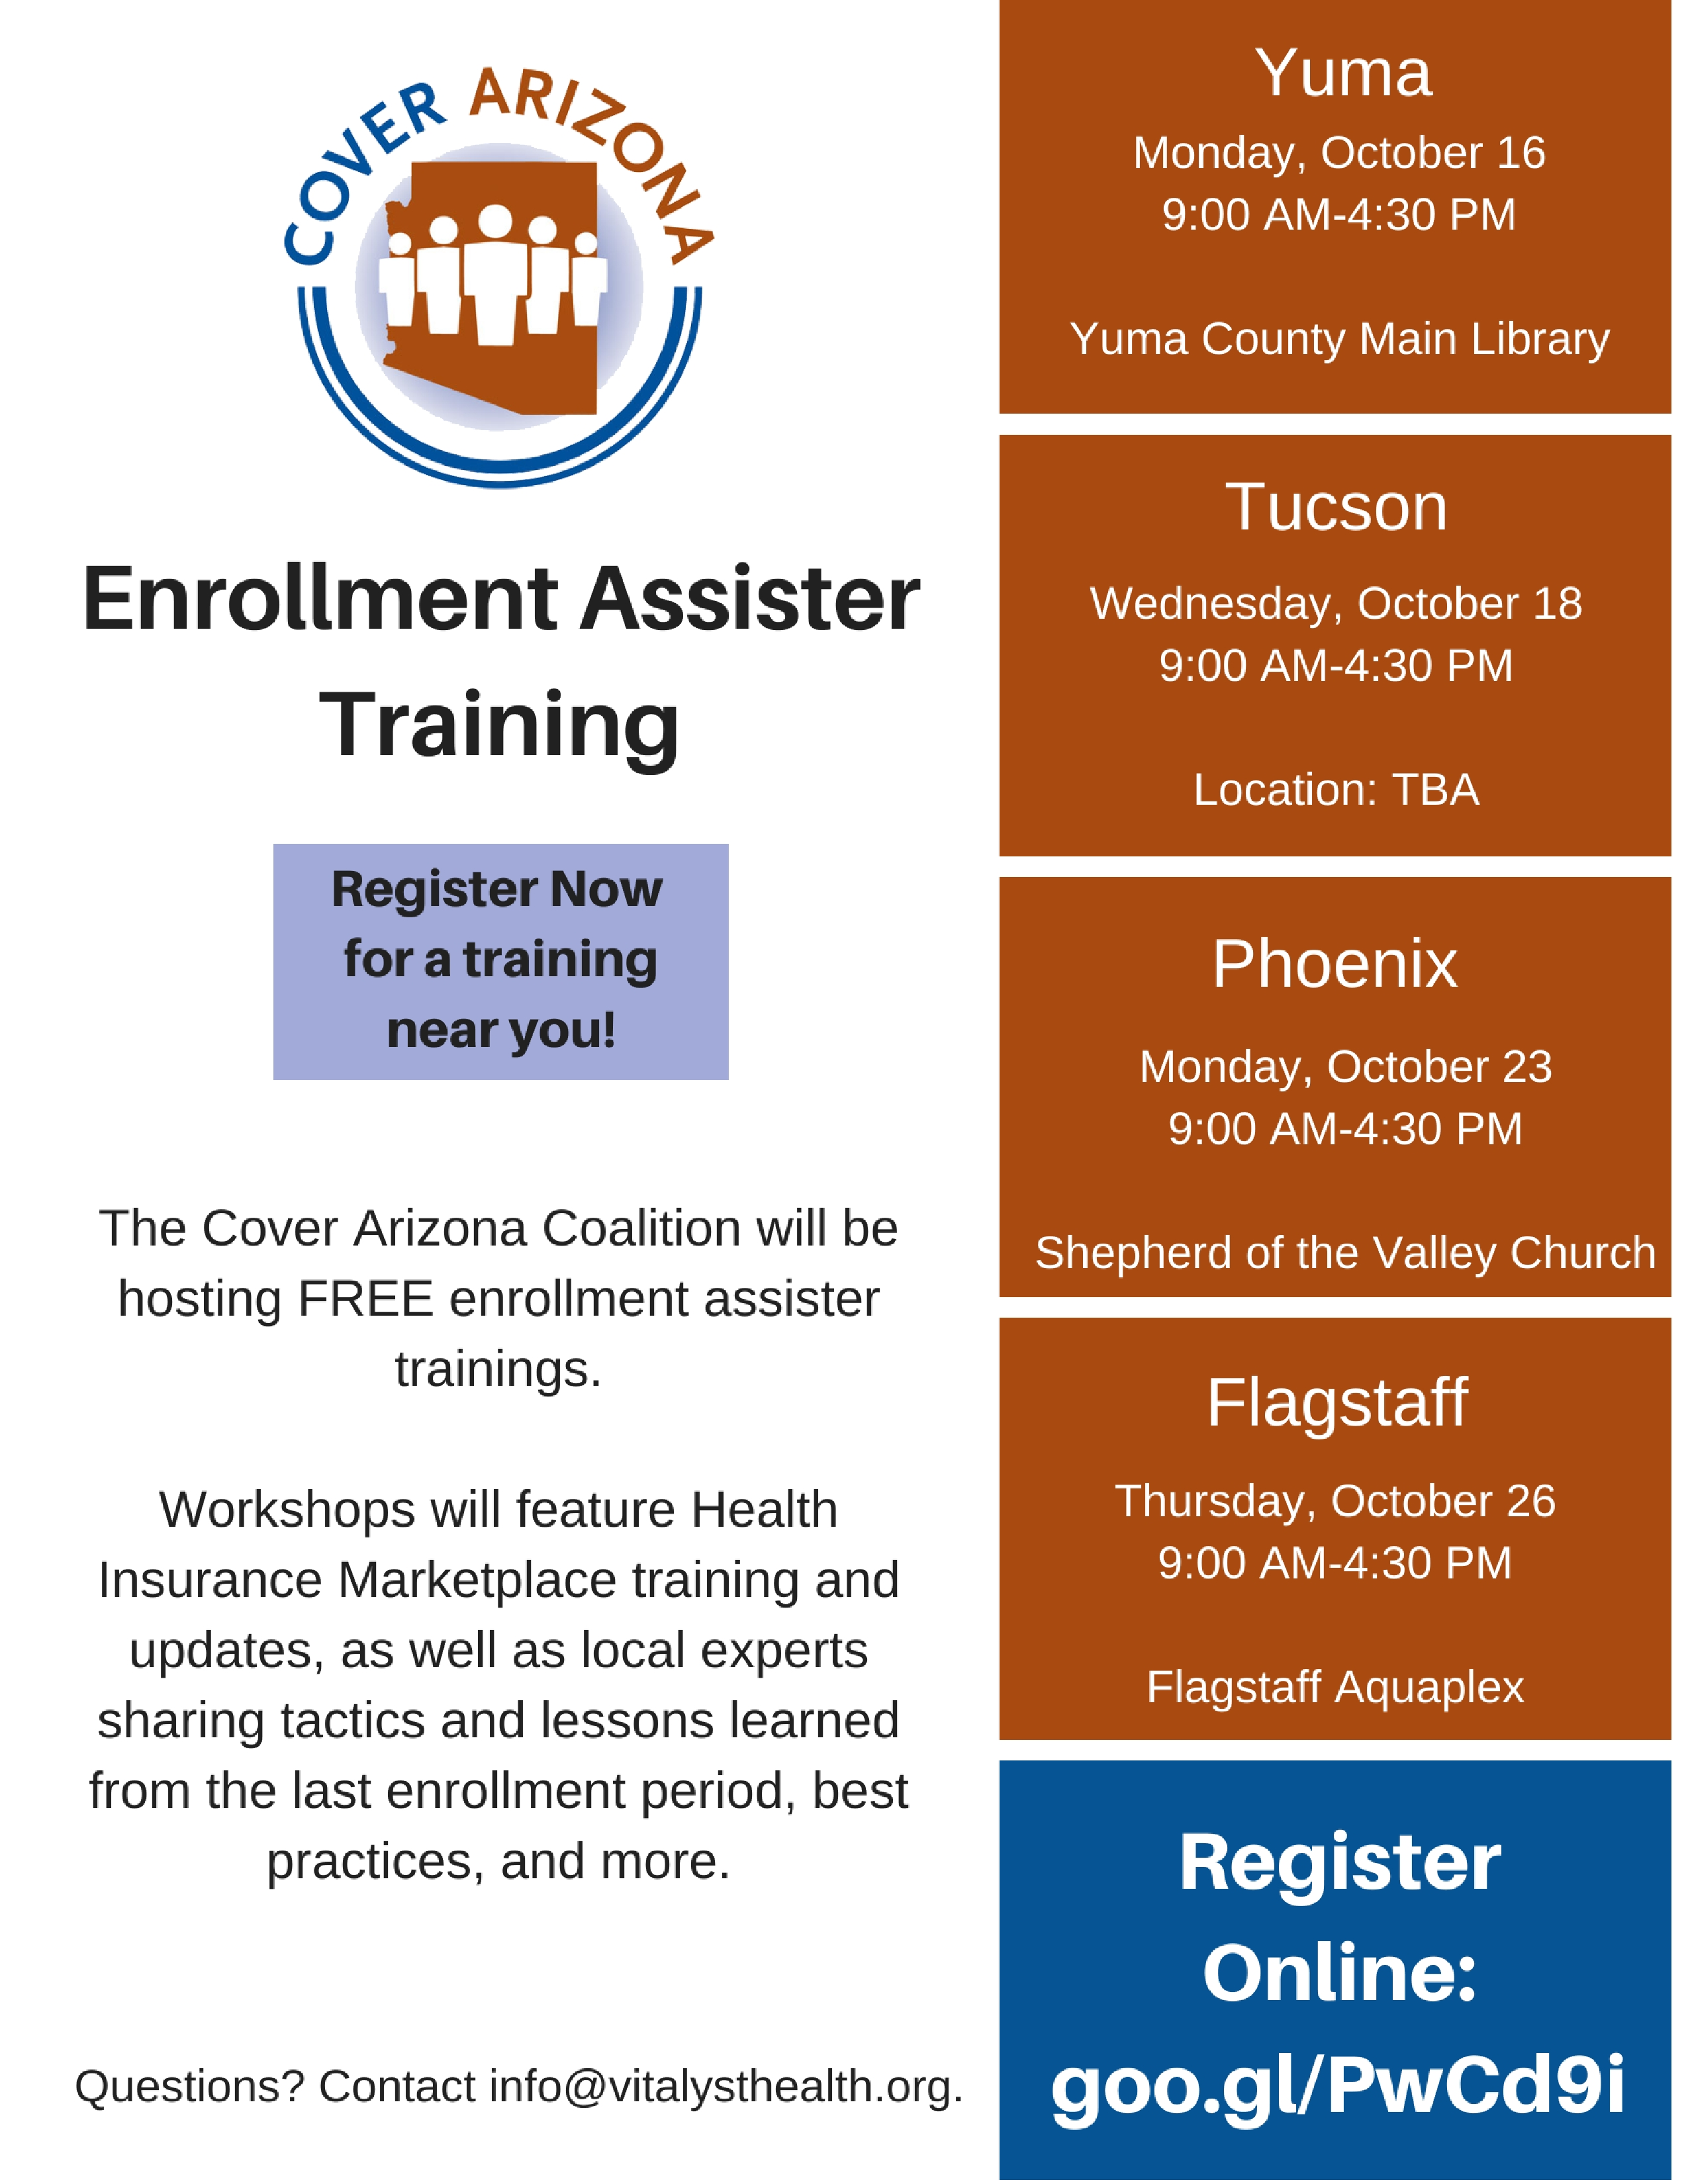 Cover ArizonaEnrollment Assister Training (2)